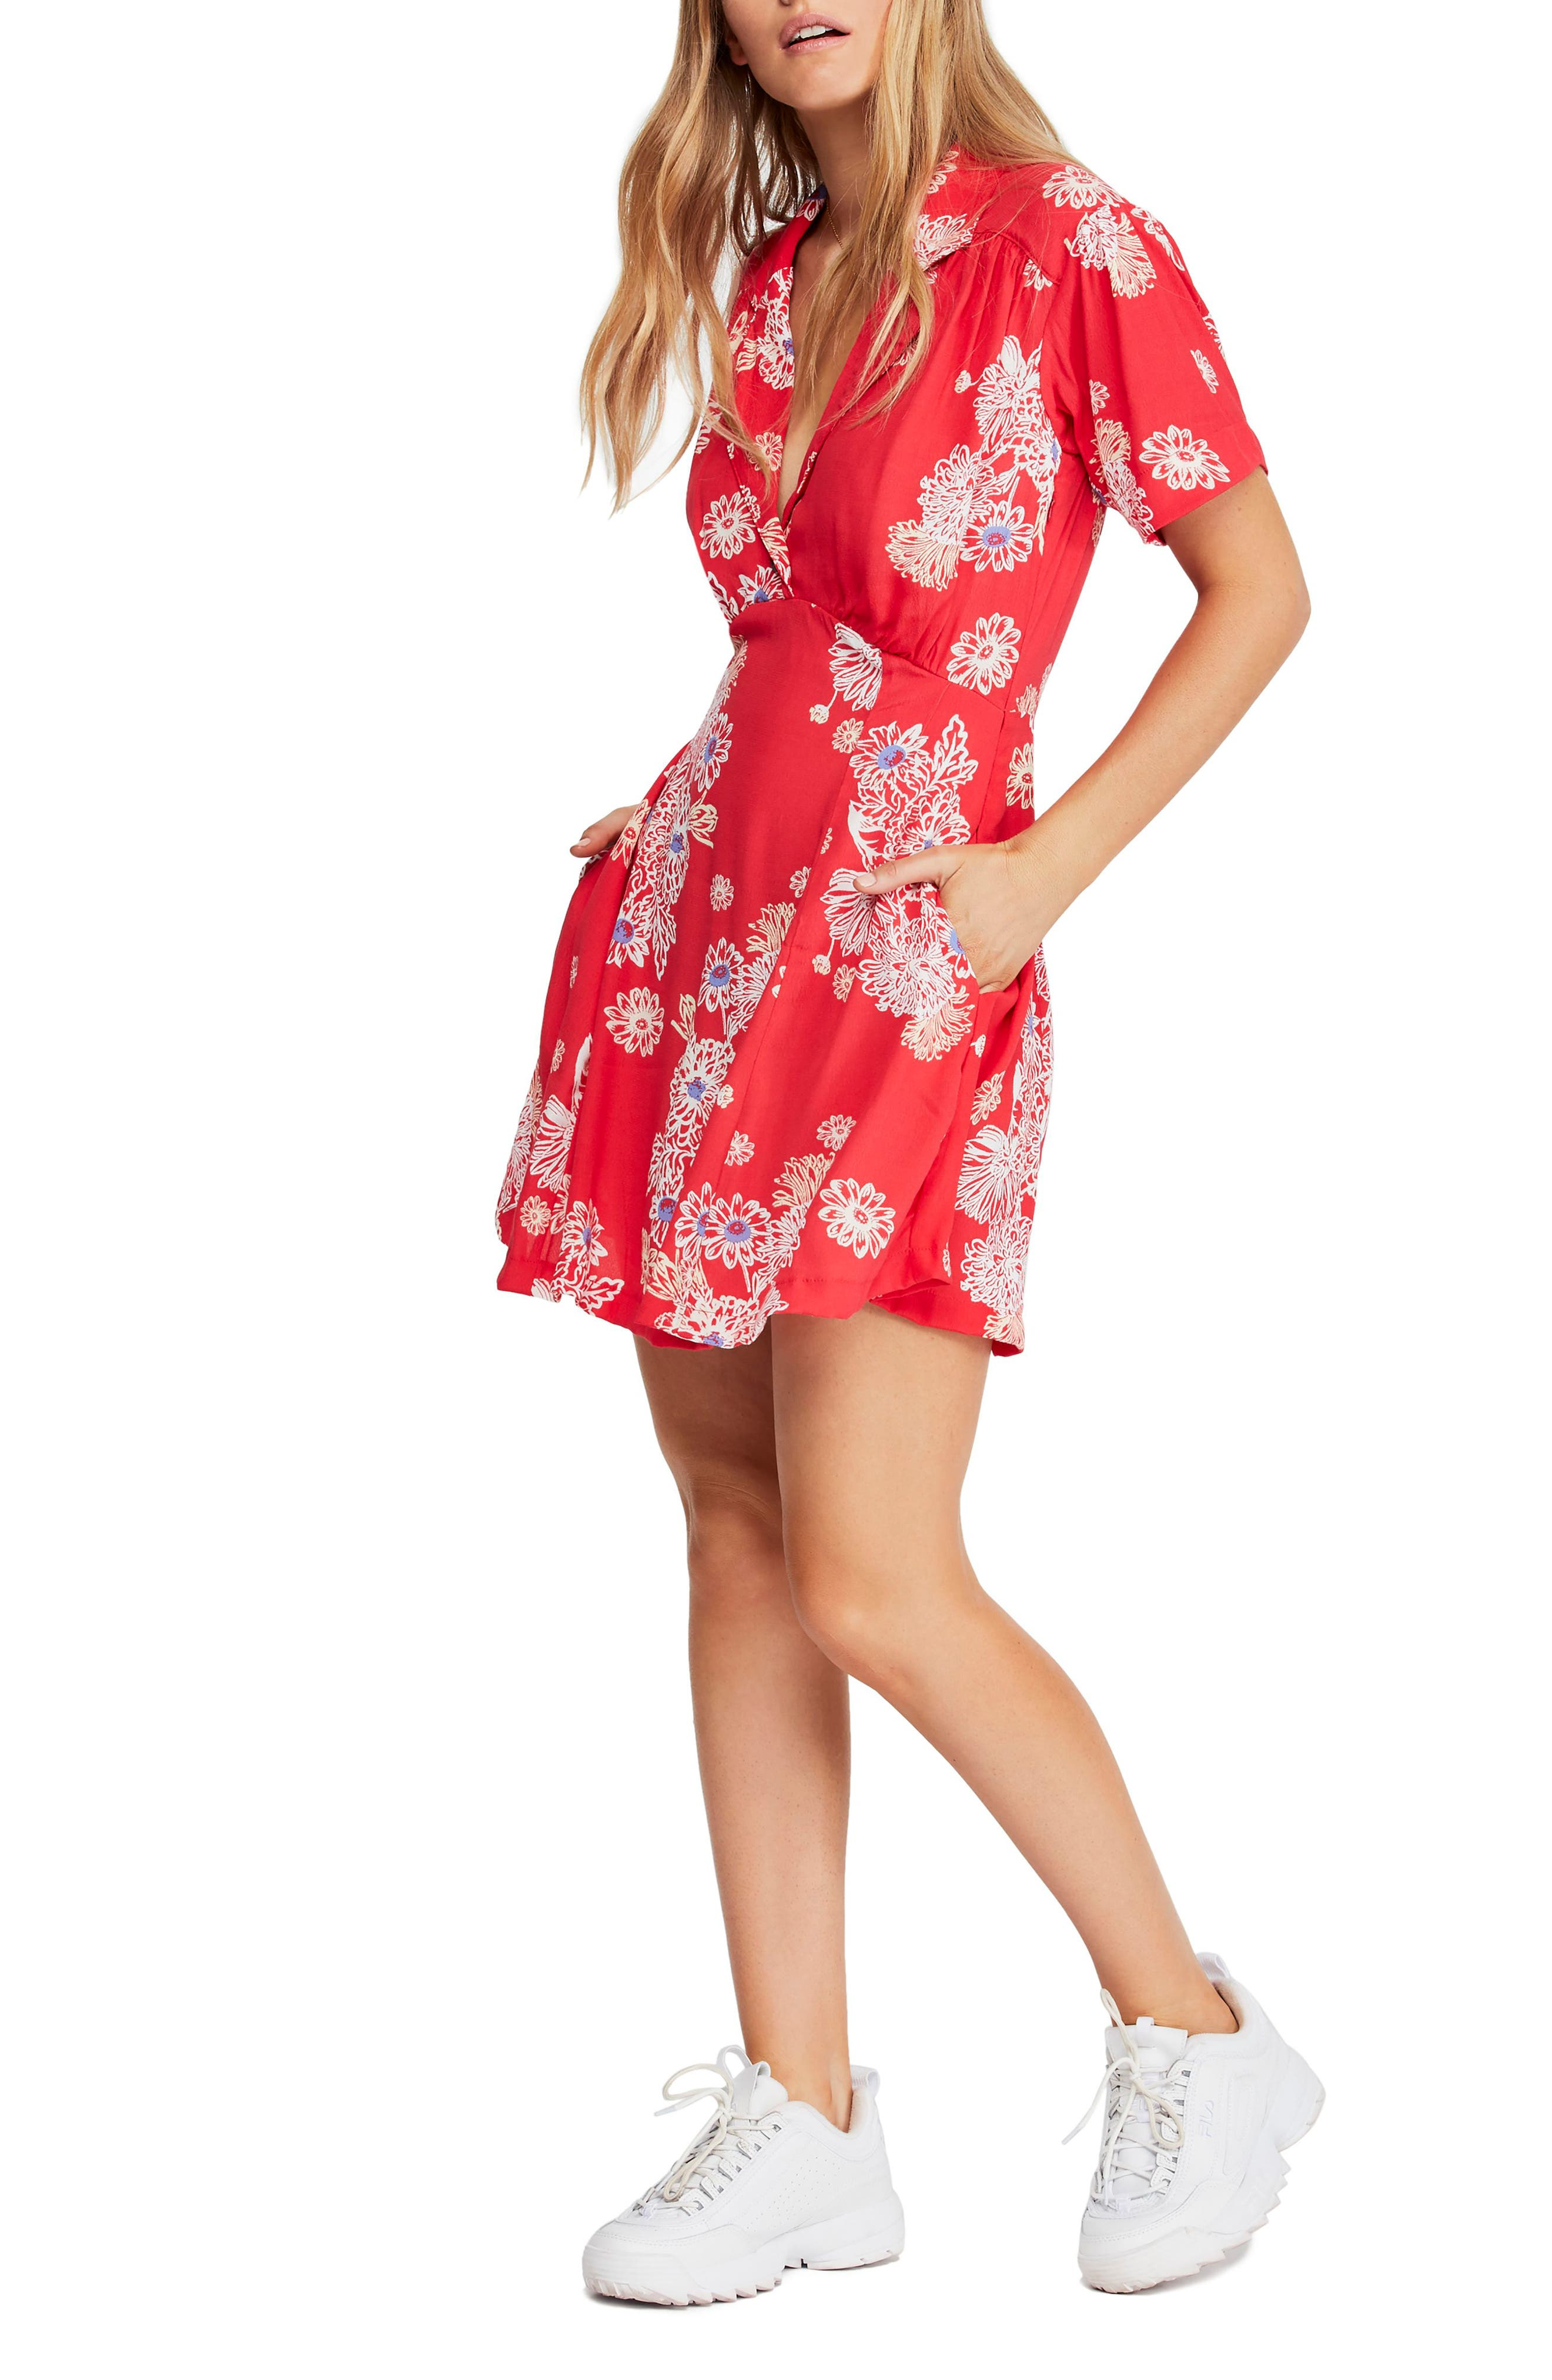 FREE PEOPLE Blue Hawaii Minidress, Main, color, RED COMBO